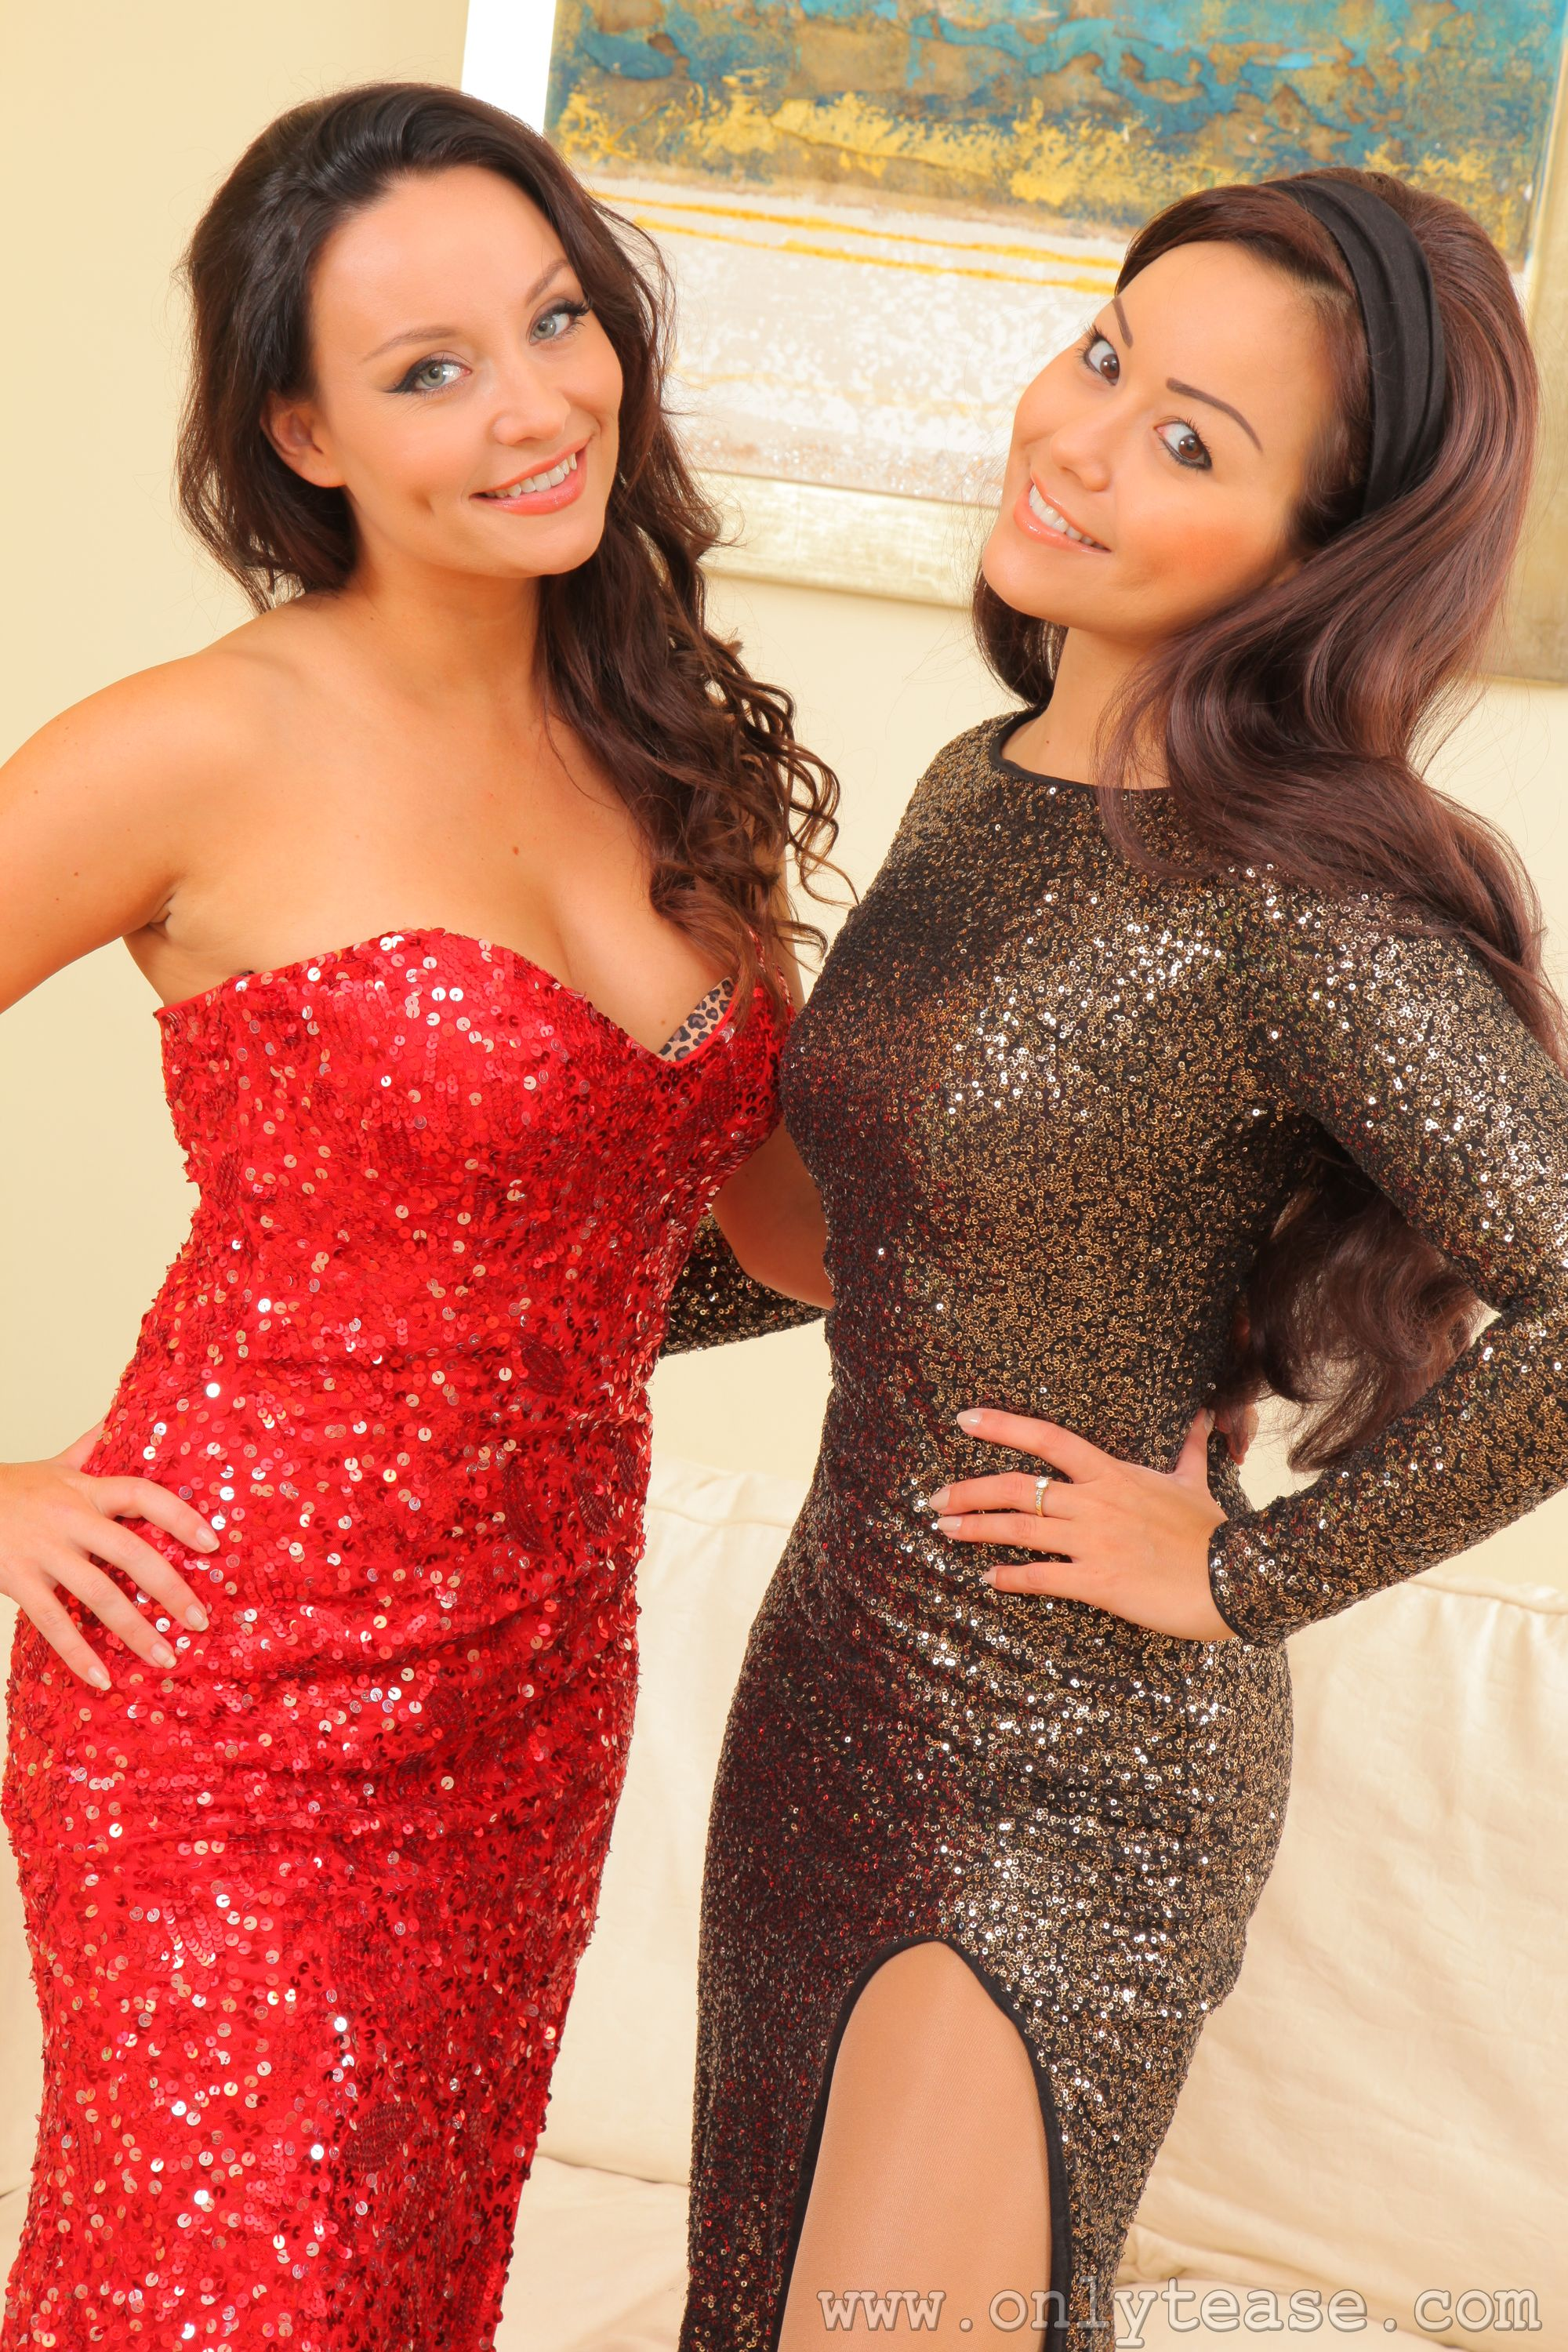 Images Petra So Carla Brown Brown haired Smile Two Girls Hands Staring frock 2000x3000 for Mobile phone 2 female young woman Glance gown Dress